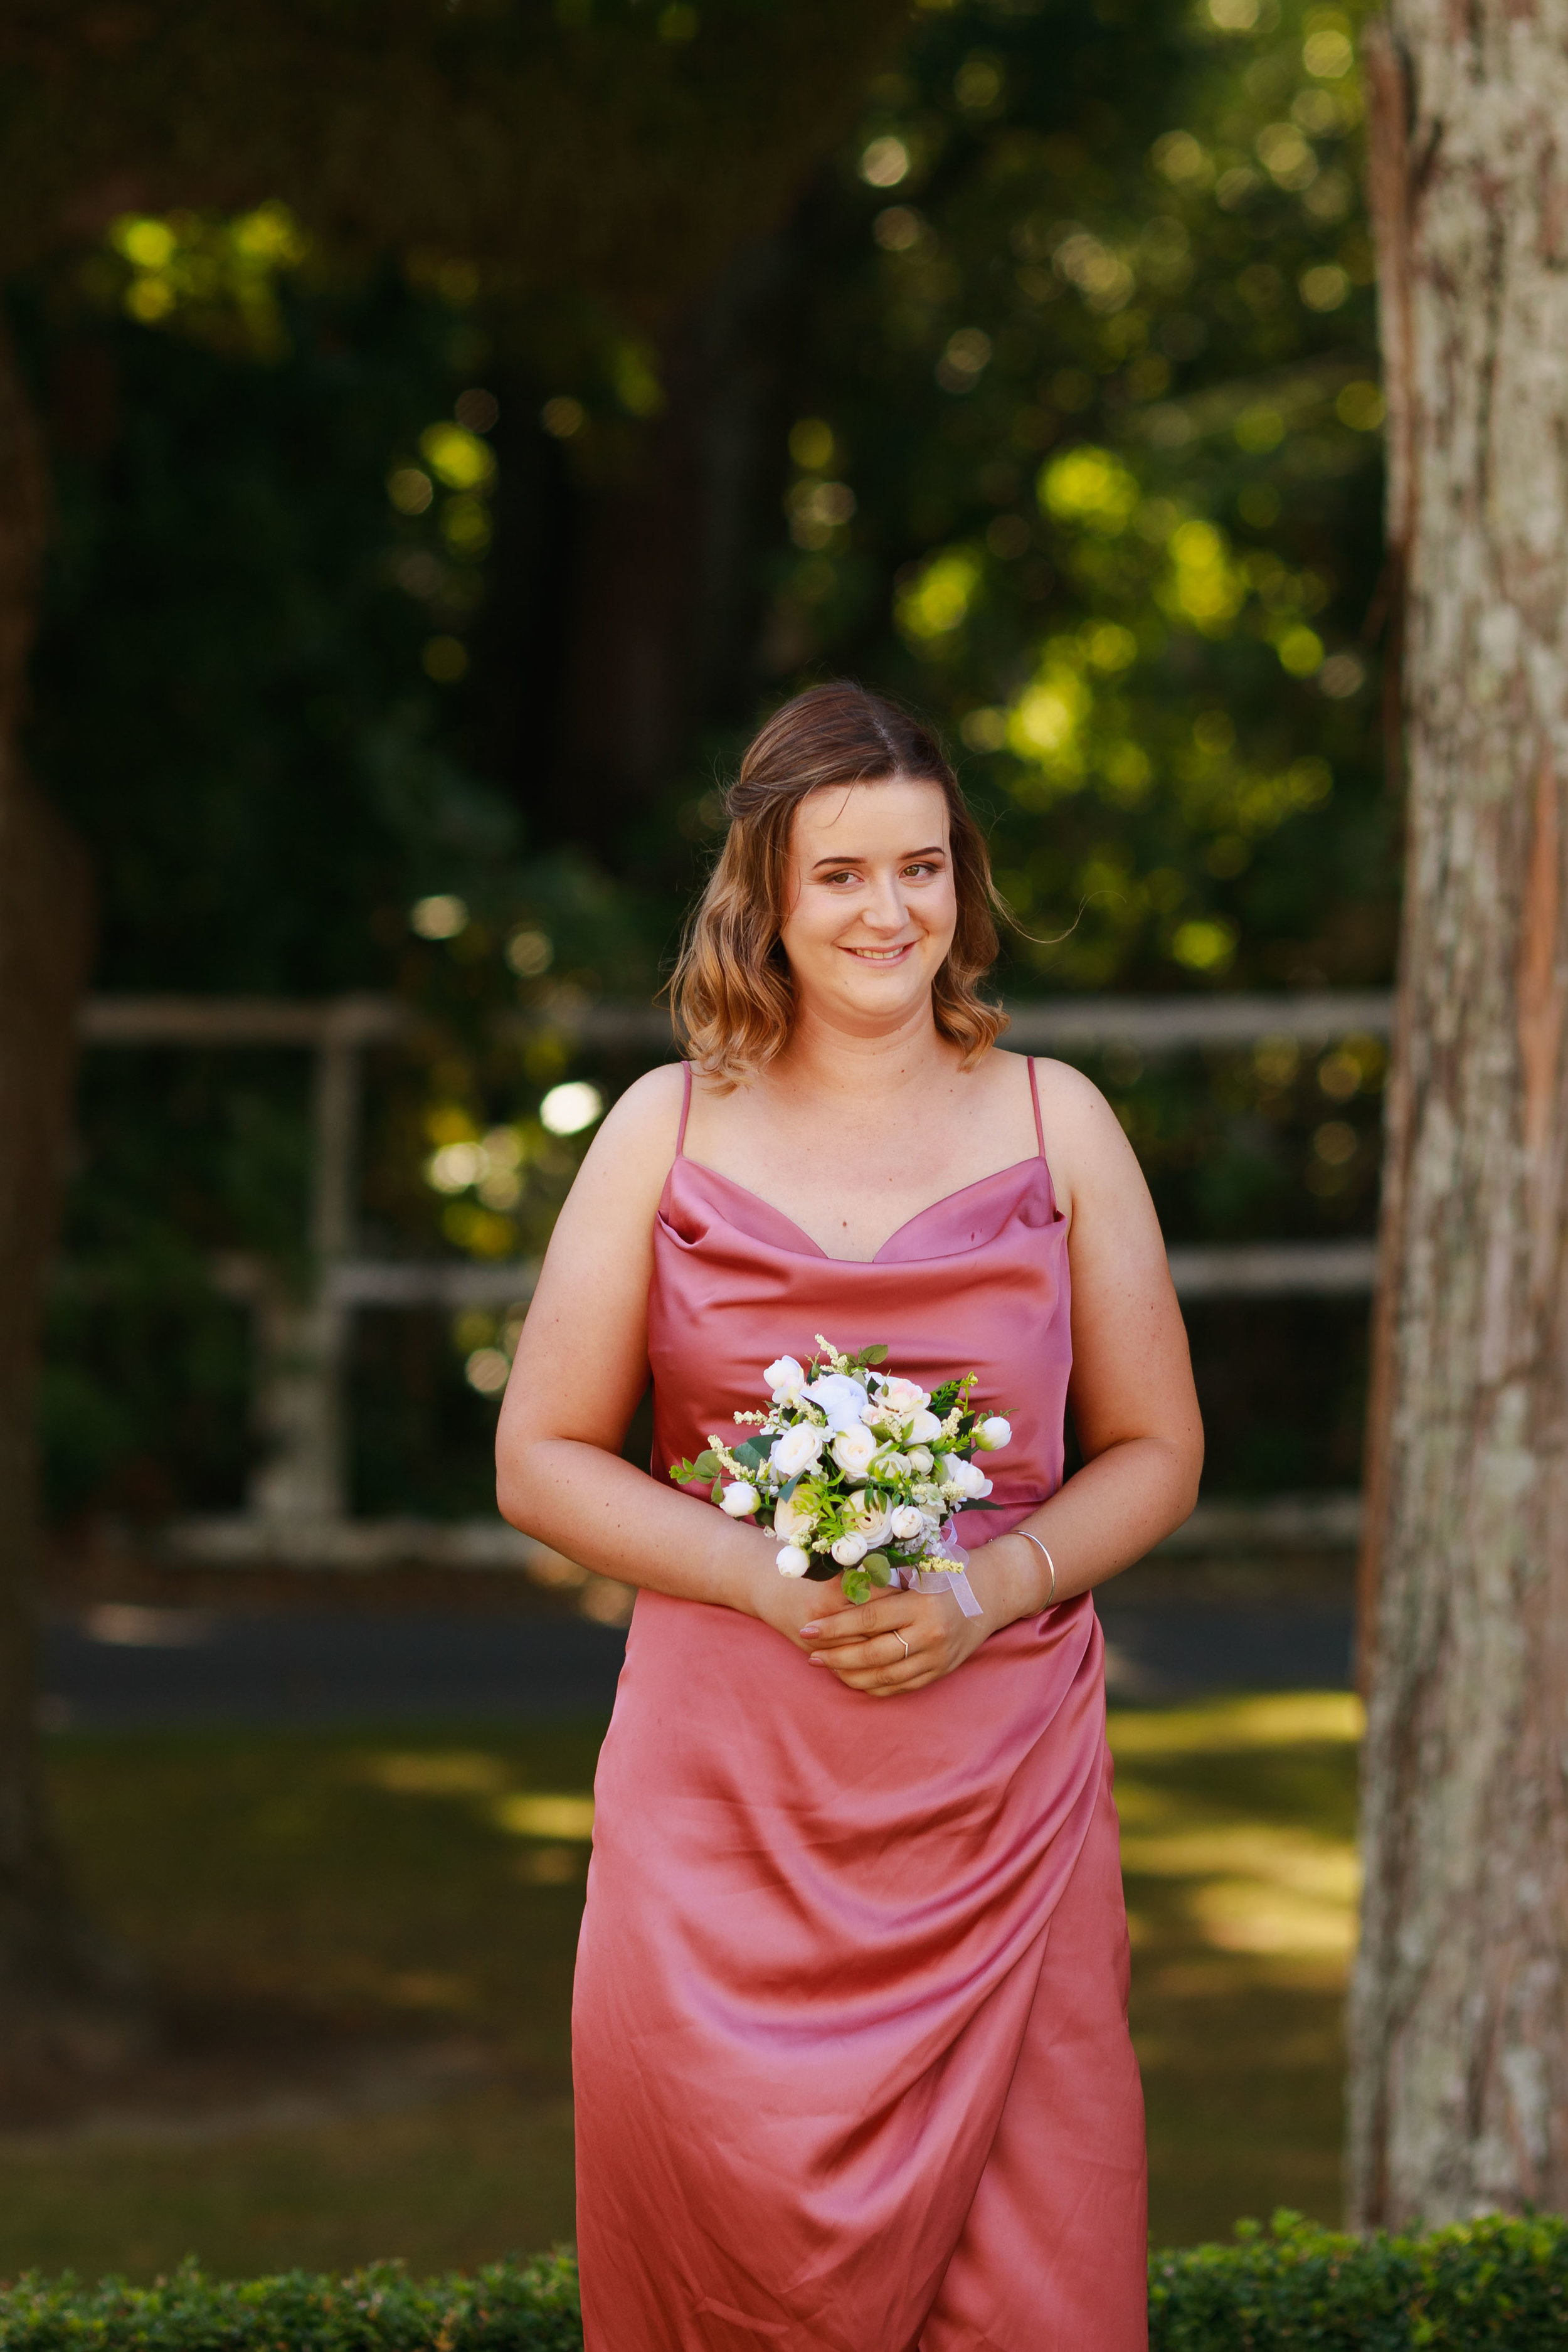 racecourse-highlight-wedding-photography-palmerston-north-84.jpg